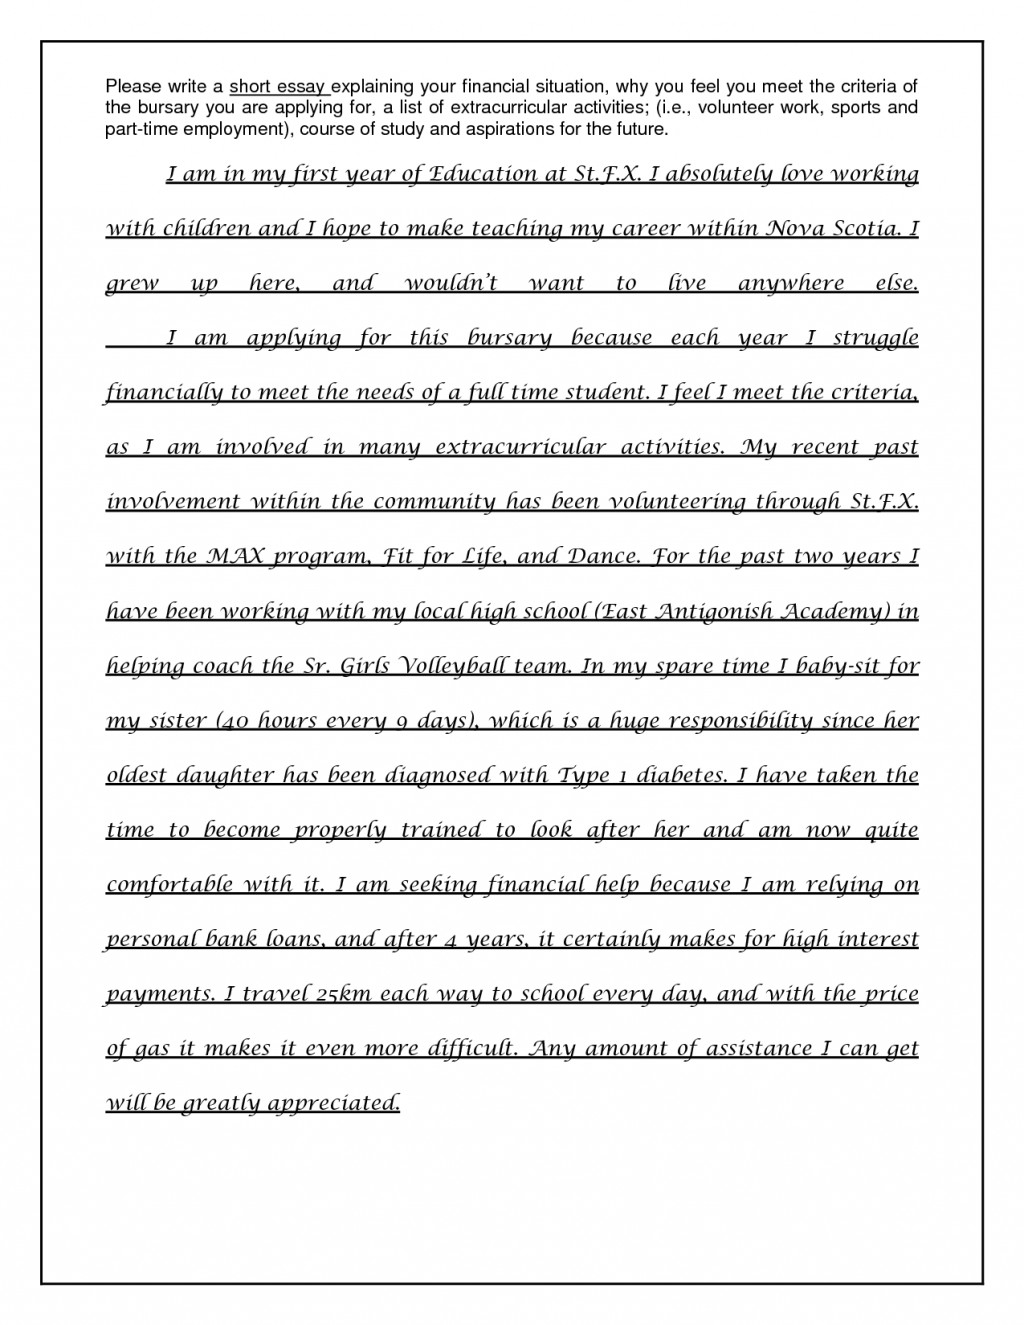 004 Examples Of Scholarship Essays On Financial Need Essay Sample Scholarships For Students How Write Essa College Based Best Large